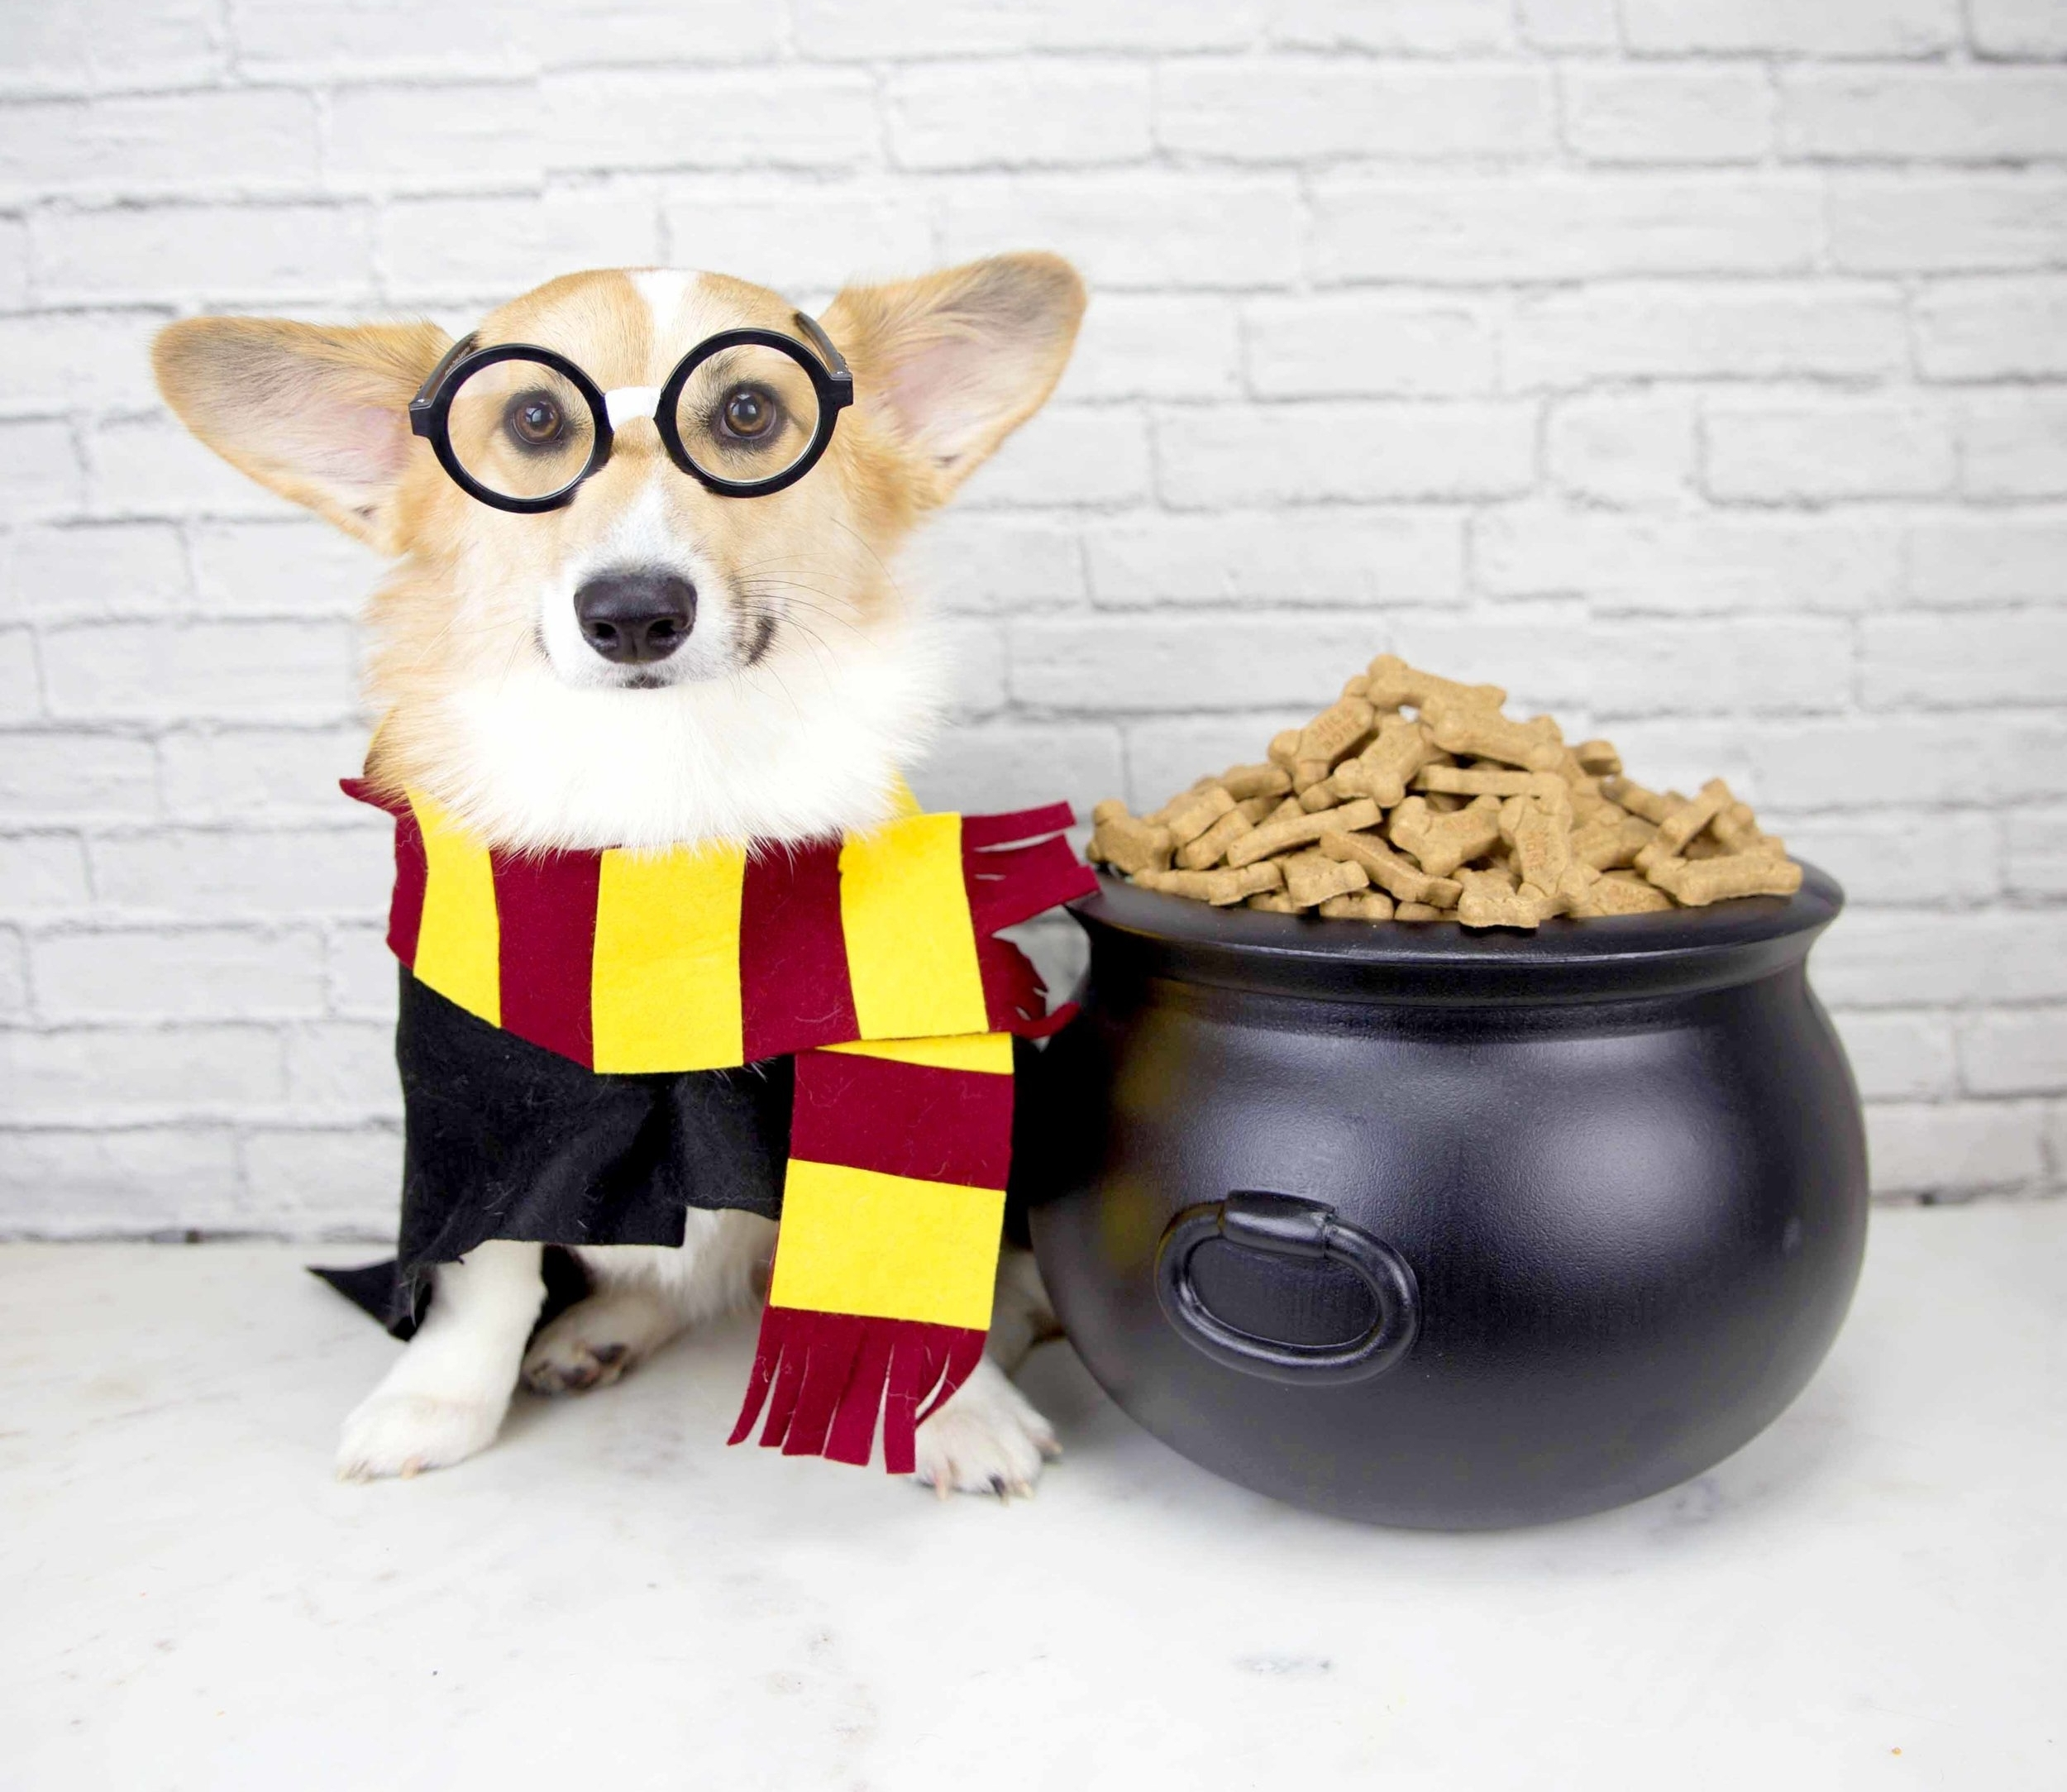 Harry Potter Birthday Party for Dogs on The Dapple Dog Lifestyle Blog. Featuring Butter Beer Recipe, Chocolate Frog Recipe, Harry Potter Cake, and more diys.